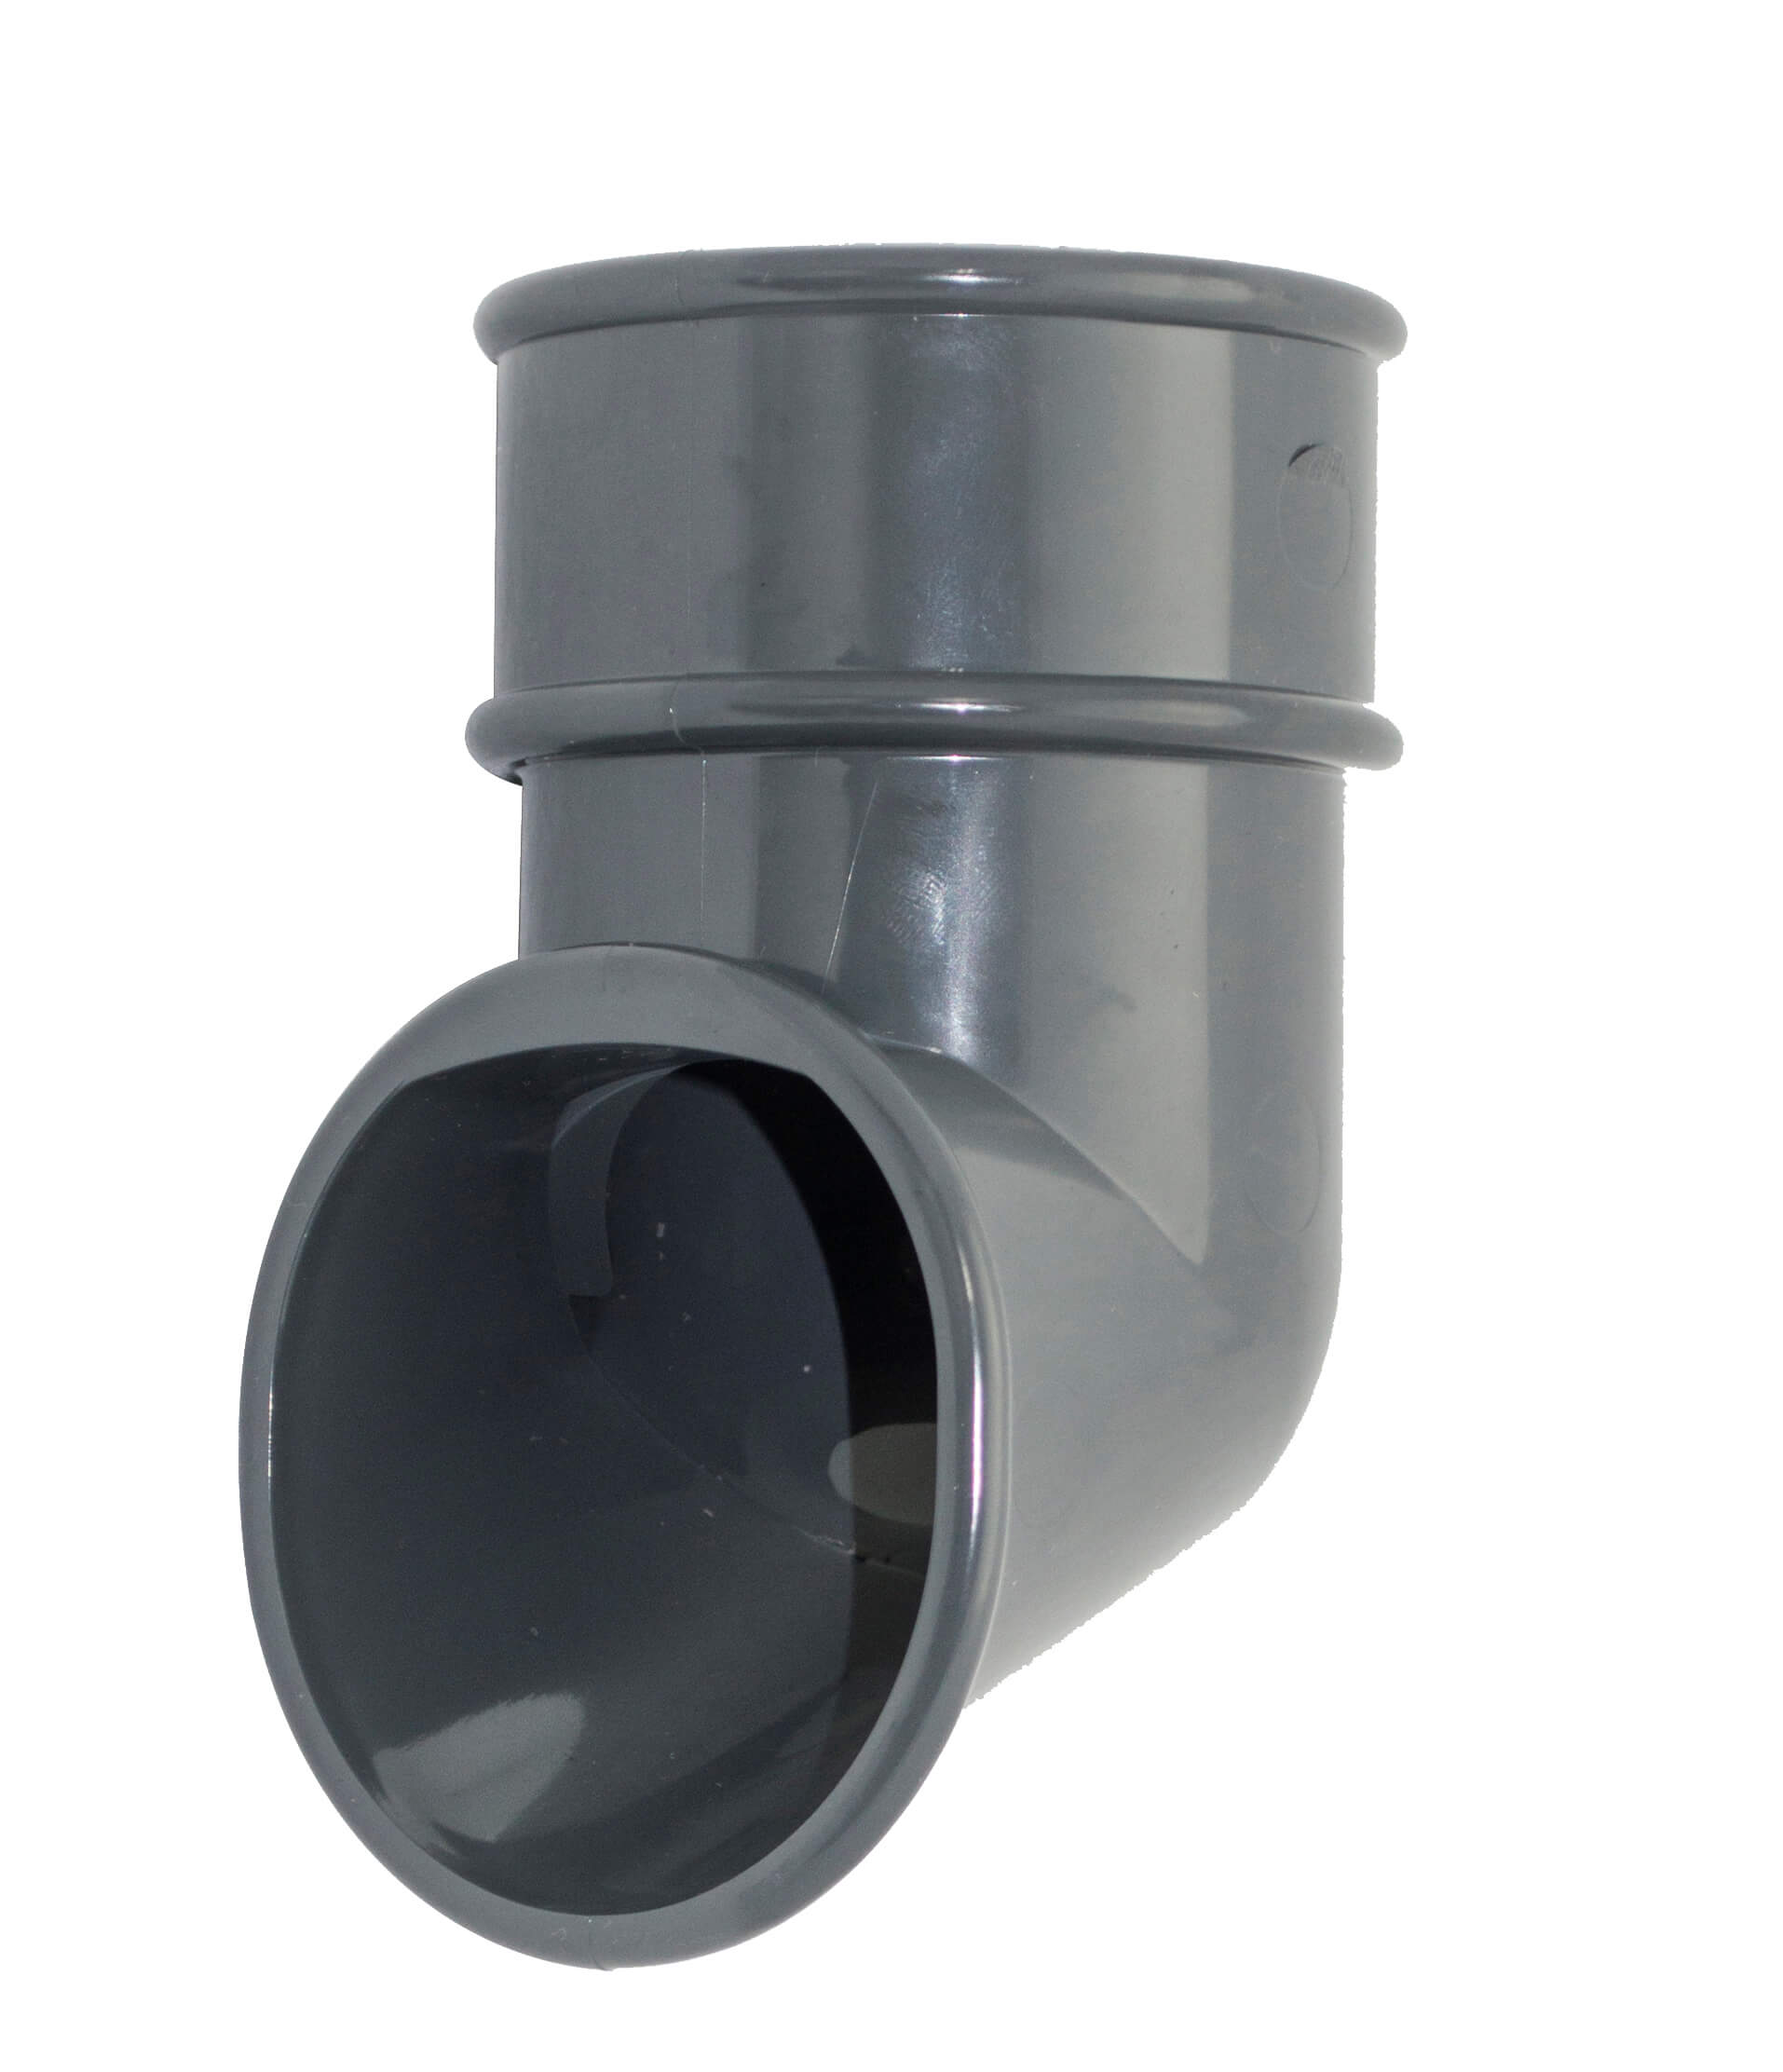 Round Downpipe Shoe - 68mm Anthracite Grey